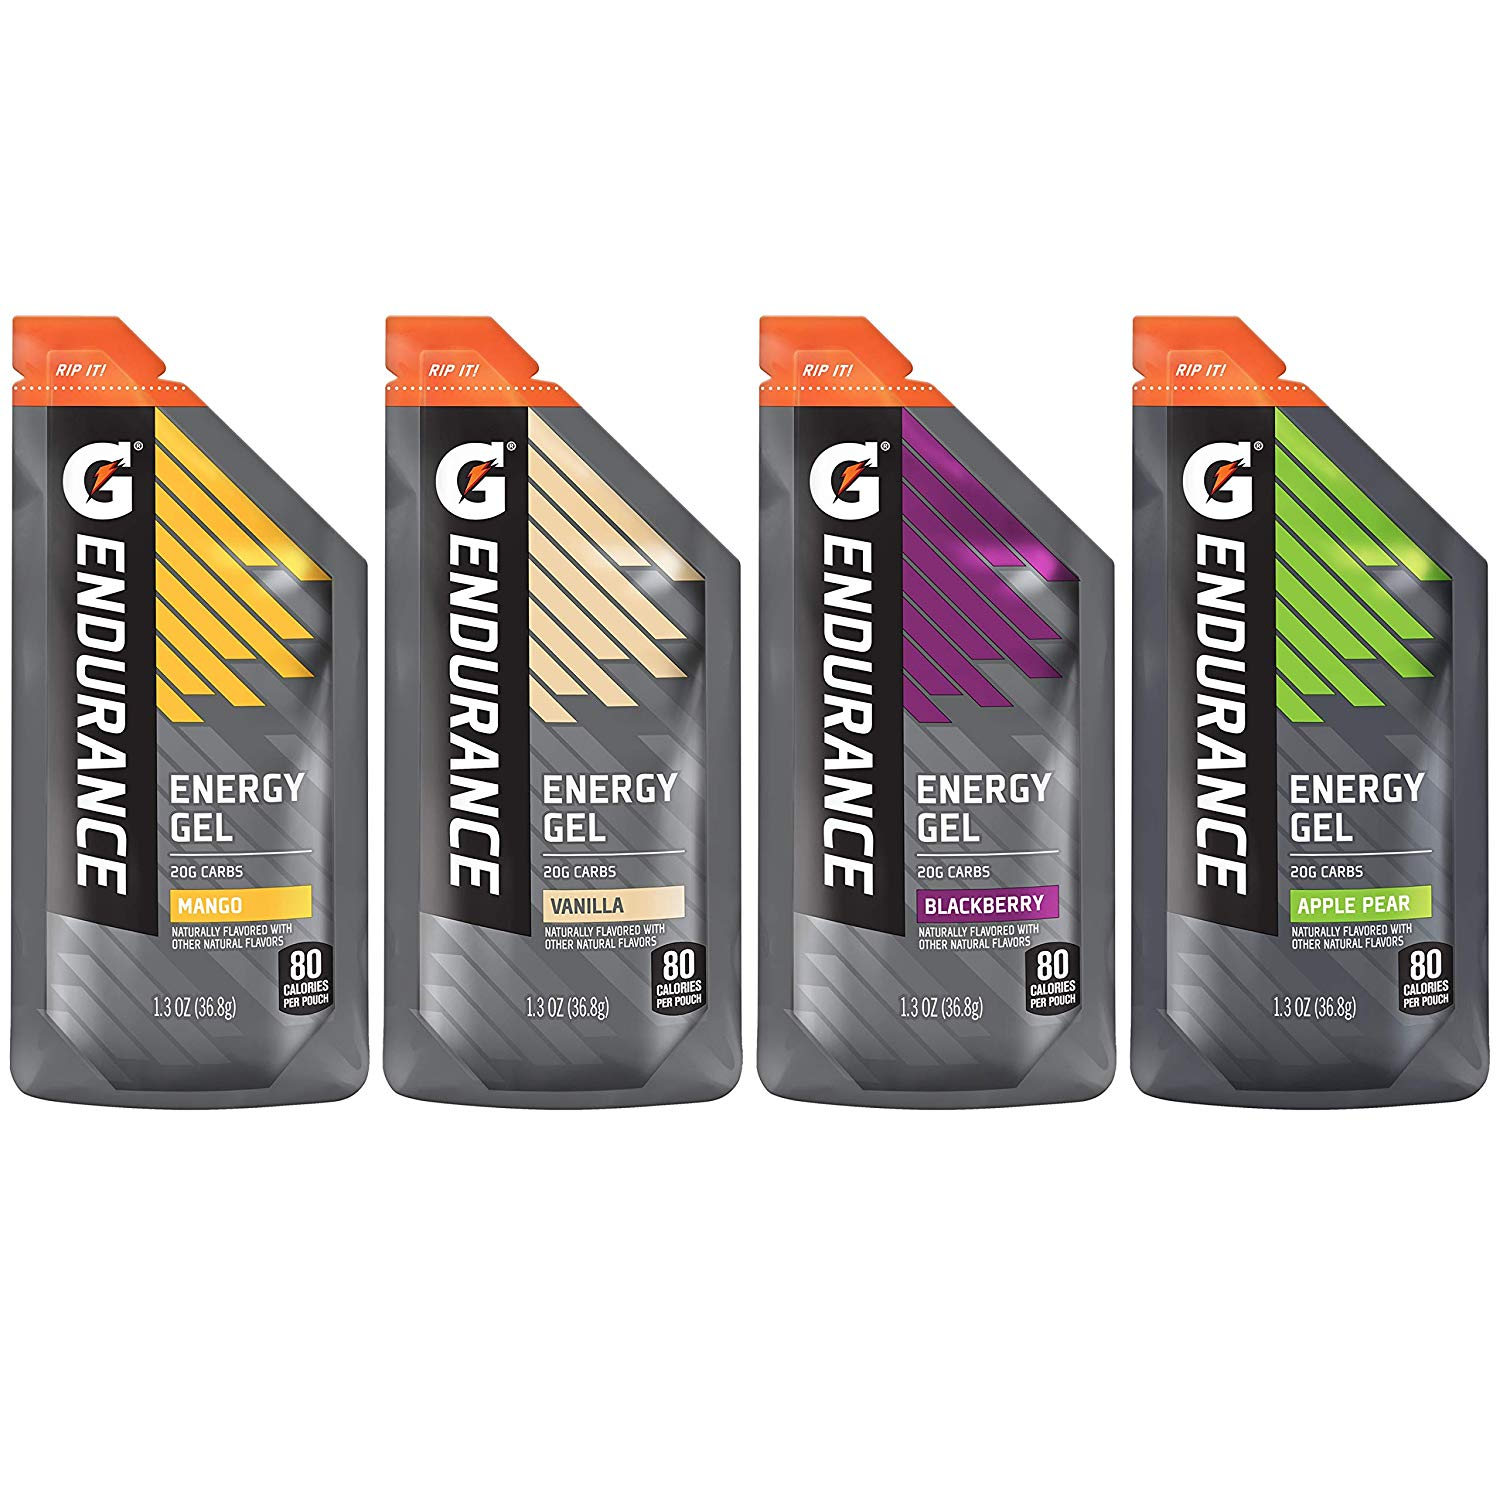 Gatorade Endurance Energy Gel variety pack